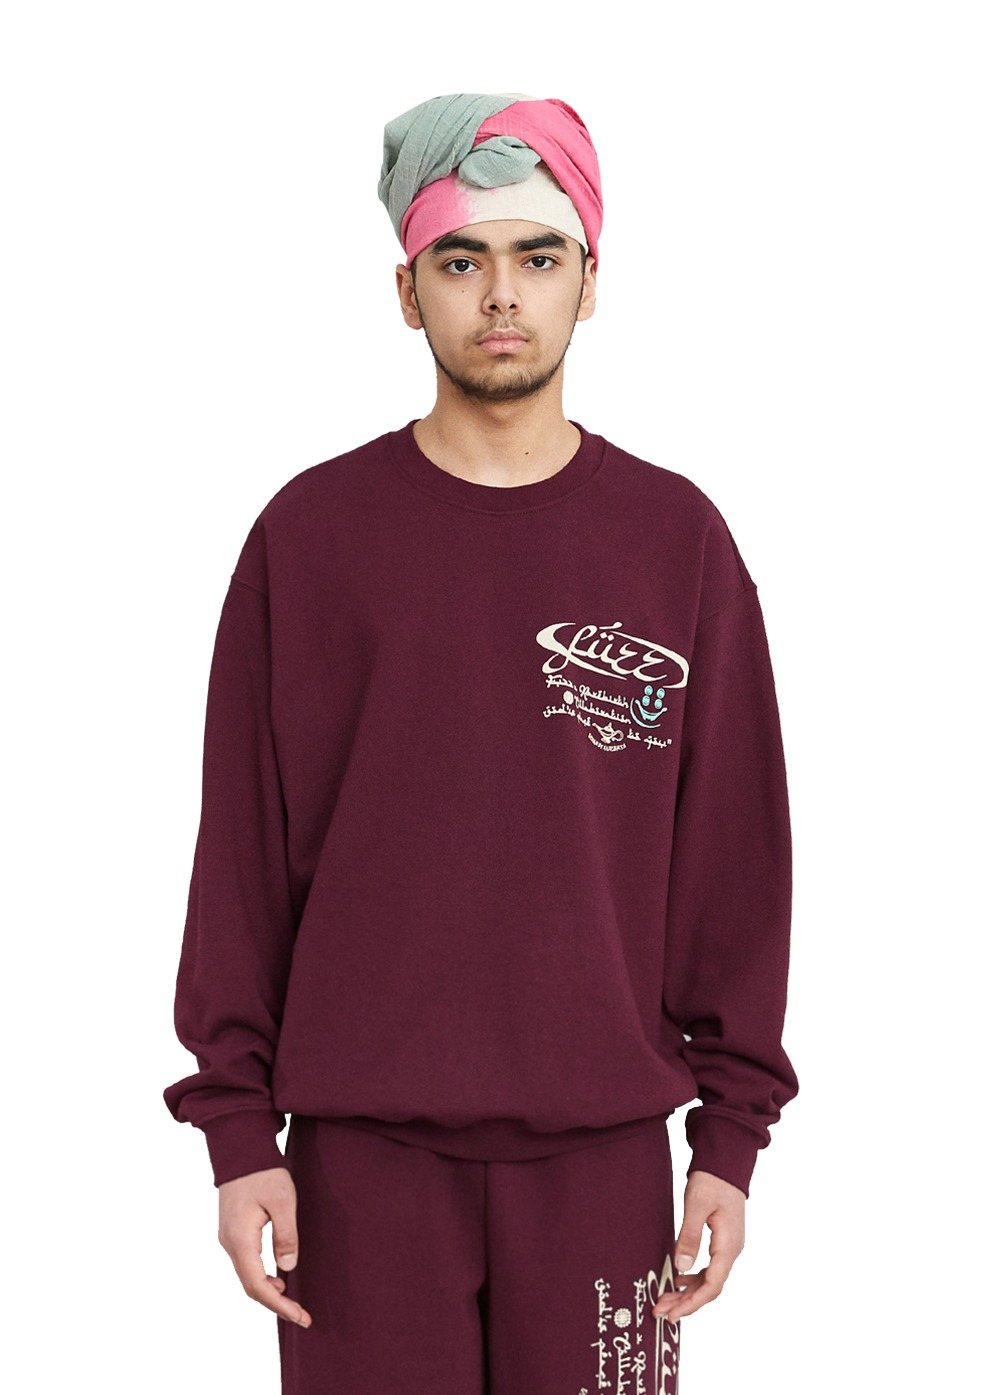 FUZZ X RAREBIRTH ASSALAMU ALAYKUM SWEATSHIRT burgundy